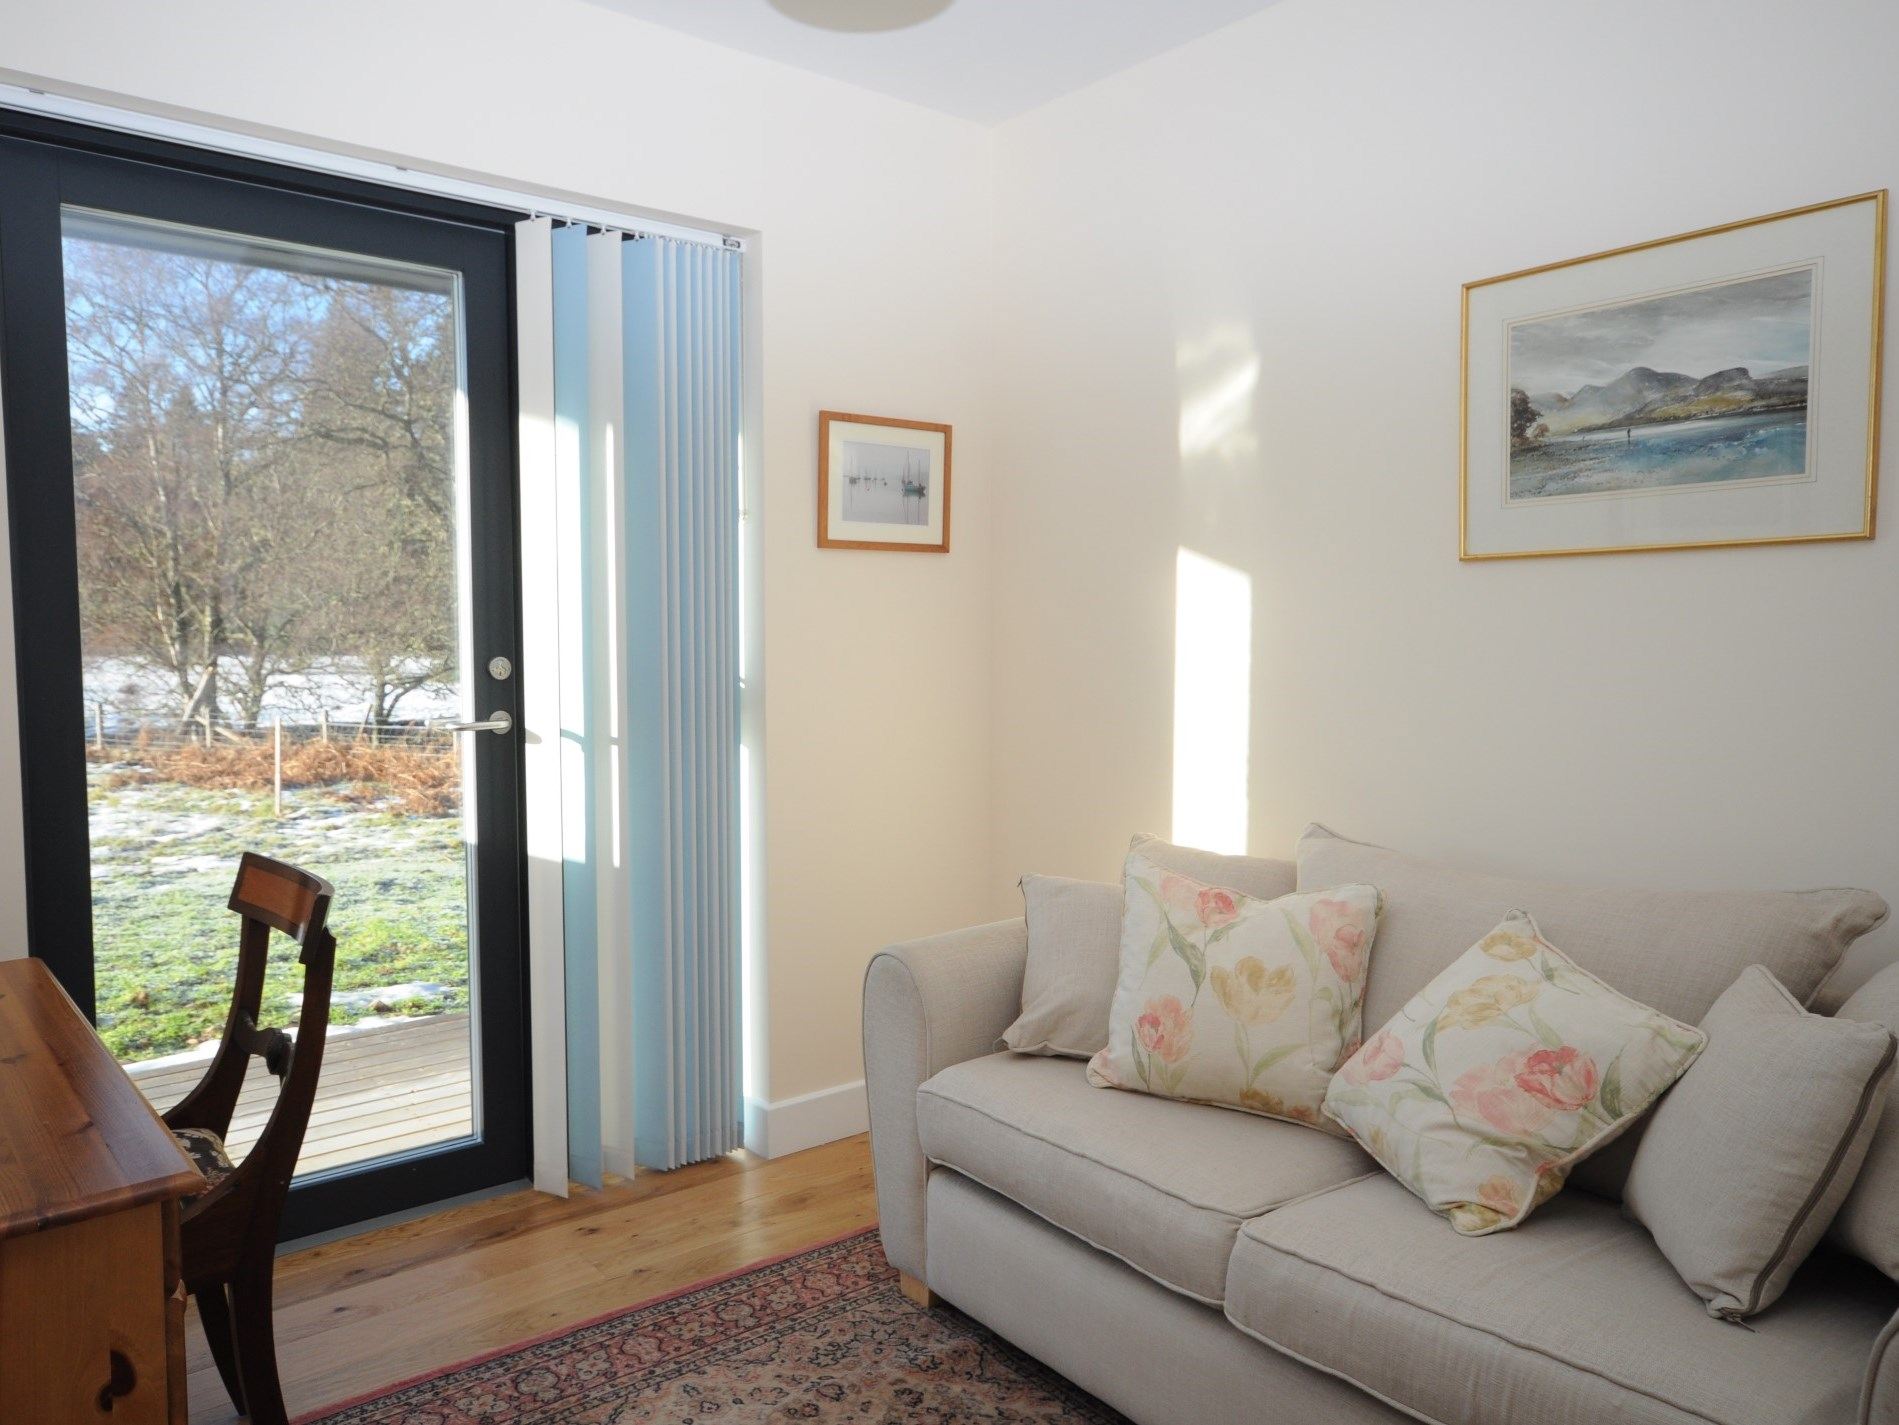 3 Bedroom Cottage in Ardgay, Inverness, Loch Ness & Nairn, Highlands